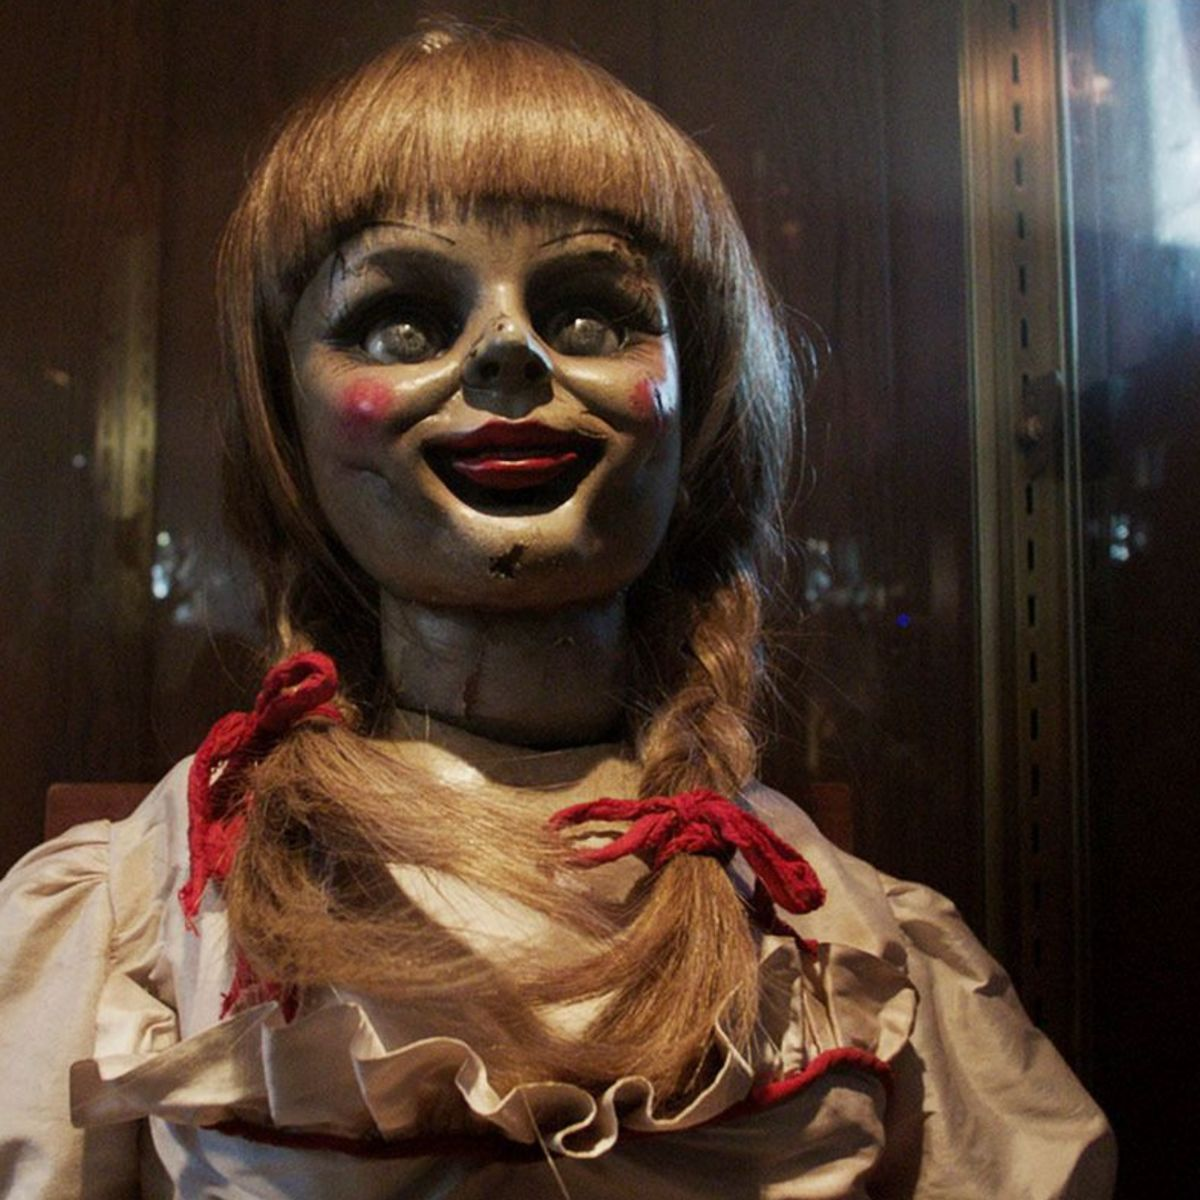 Annabelle-2014-Trailer-News-Marshall-We-Live-Film.jpg